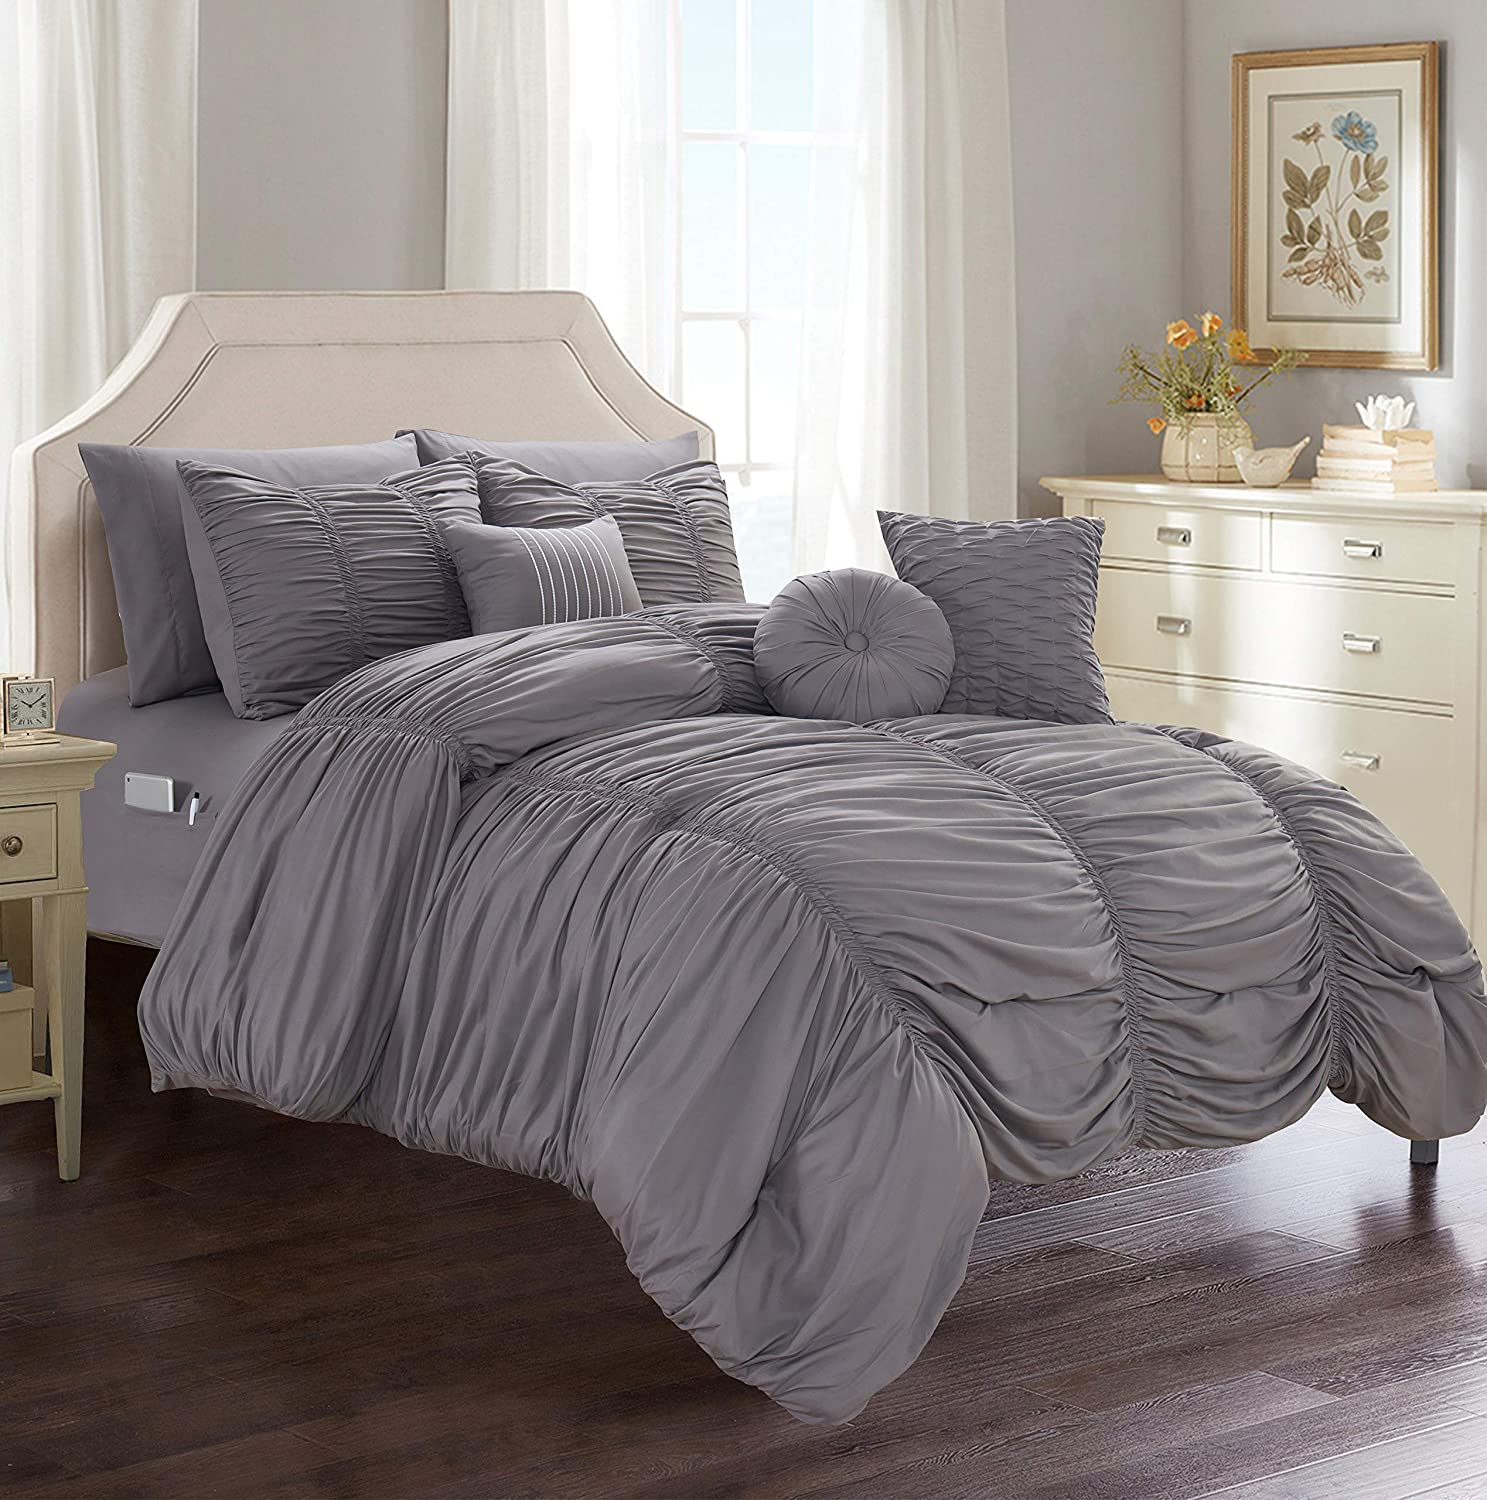 Elegant Comfort Luxury Best, Softest, Coziest 10-Piece Bed-in-a-Bag Pleated Comforter Set, Ruched Ruffle Comforter Set Includes Bed Sheet Set with Double Sided Storage Pockets, Full/Queen, Grey